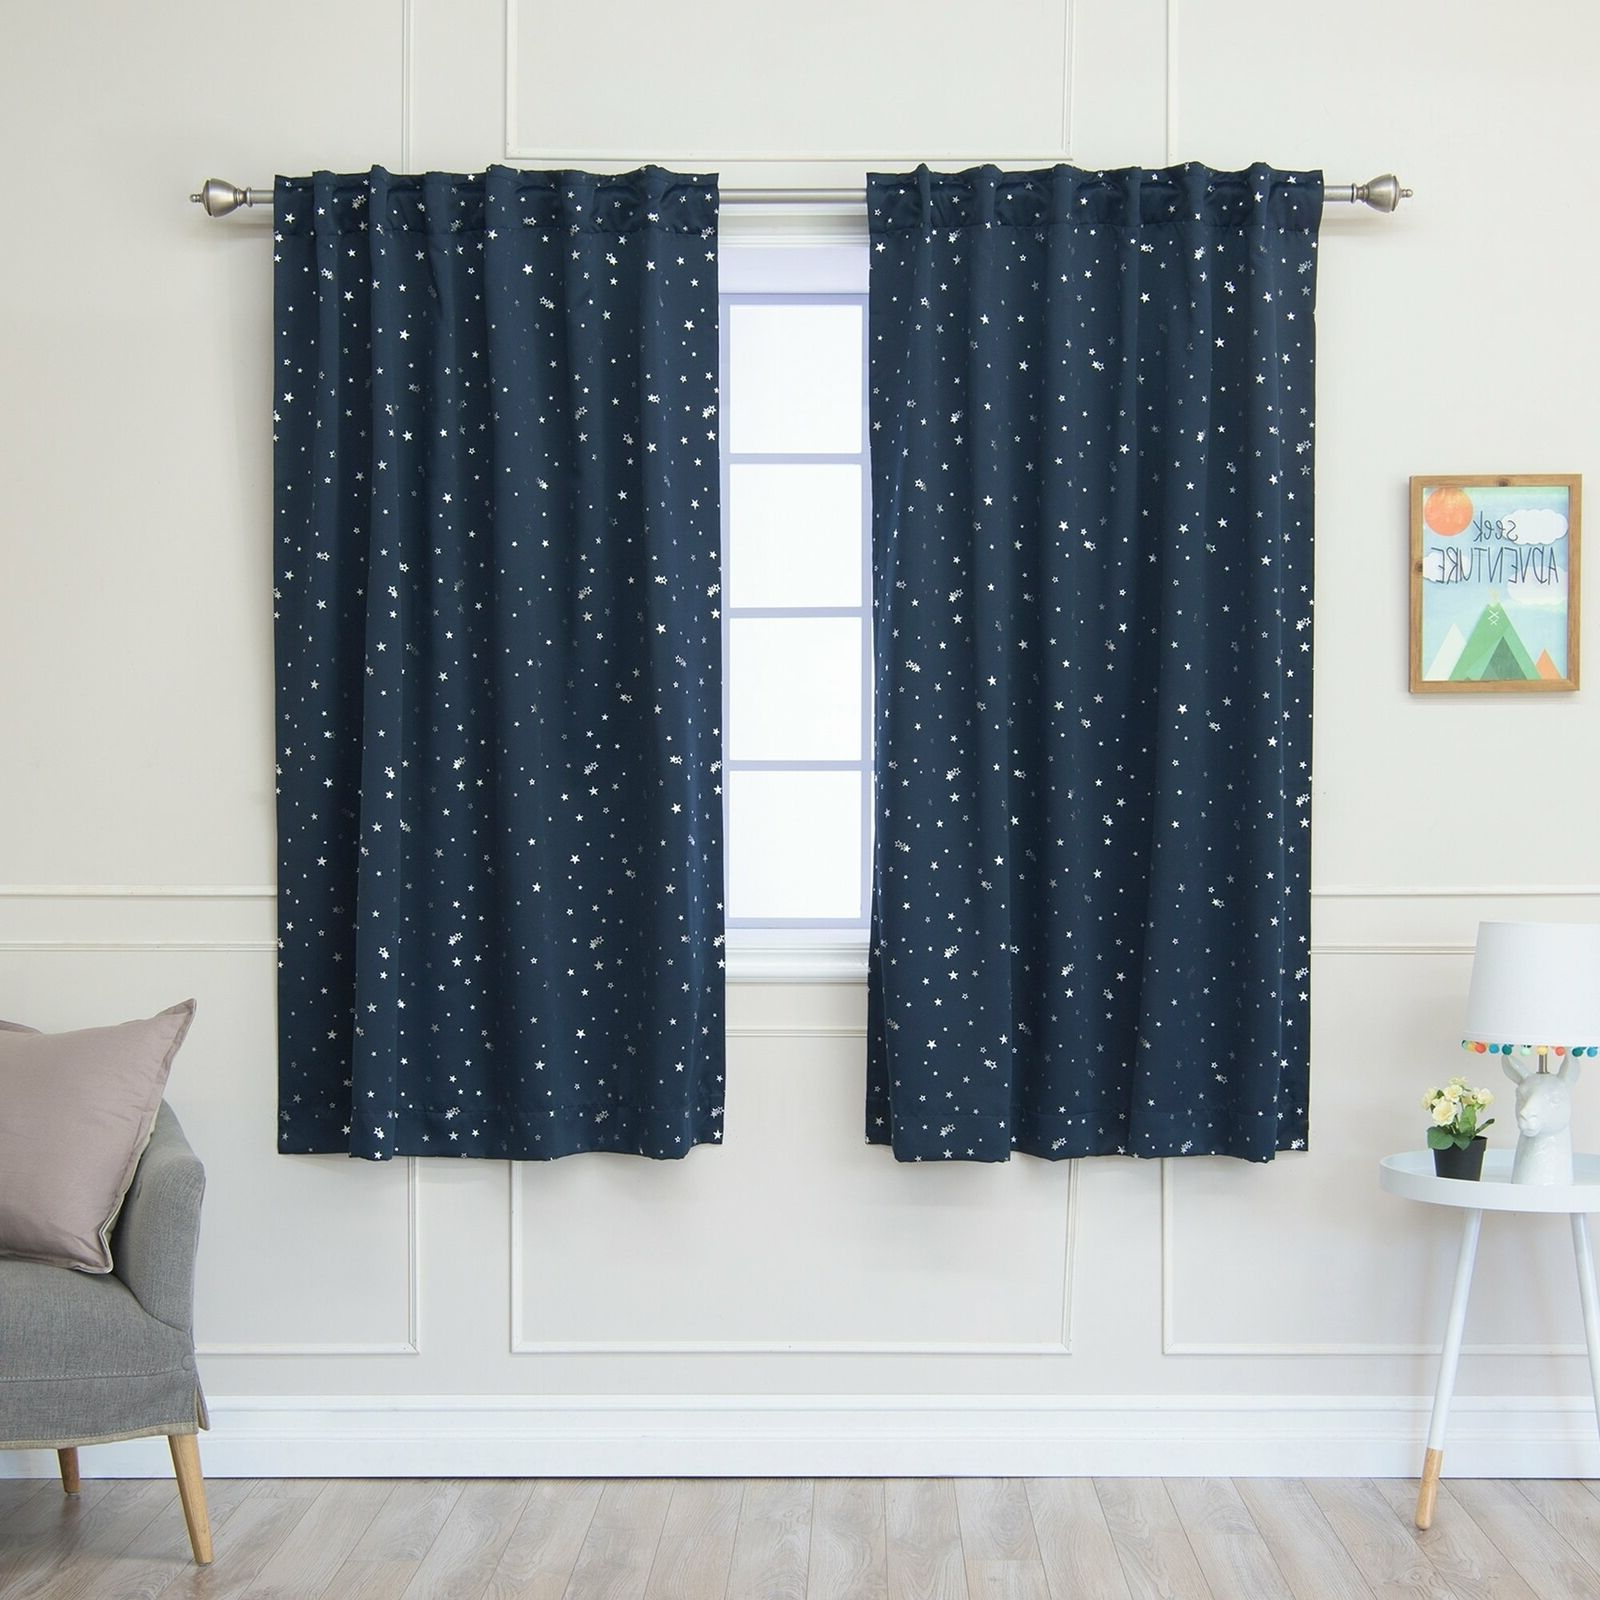 Tuscan Thermal Backed Blackout Curtain Panel Pairs Pertaining To Well Liked Aurora Home Star Struck Insulated Thermal Blackout 63 Inch Curtain Panel Pair – (View 10 of 20)